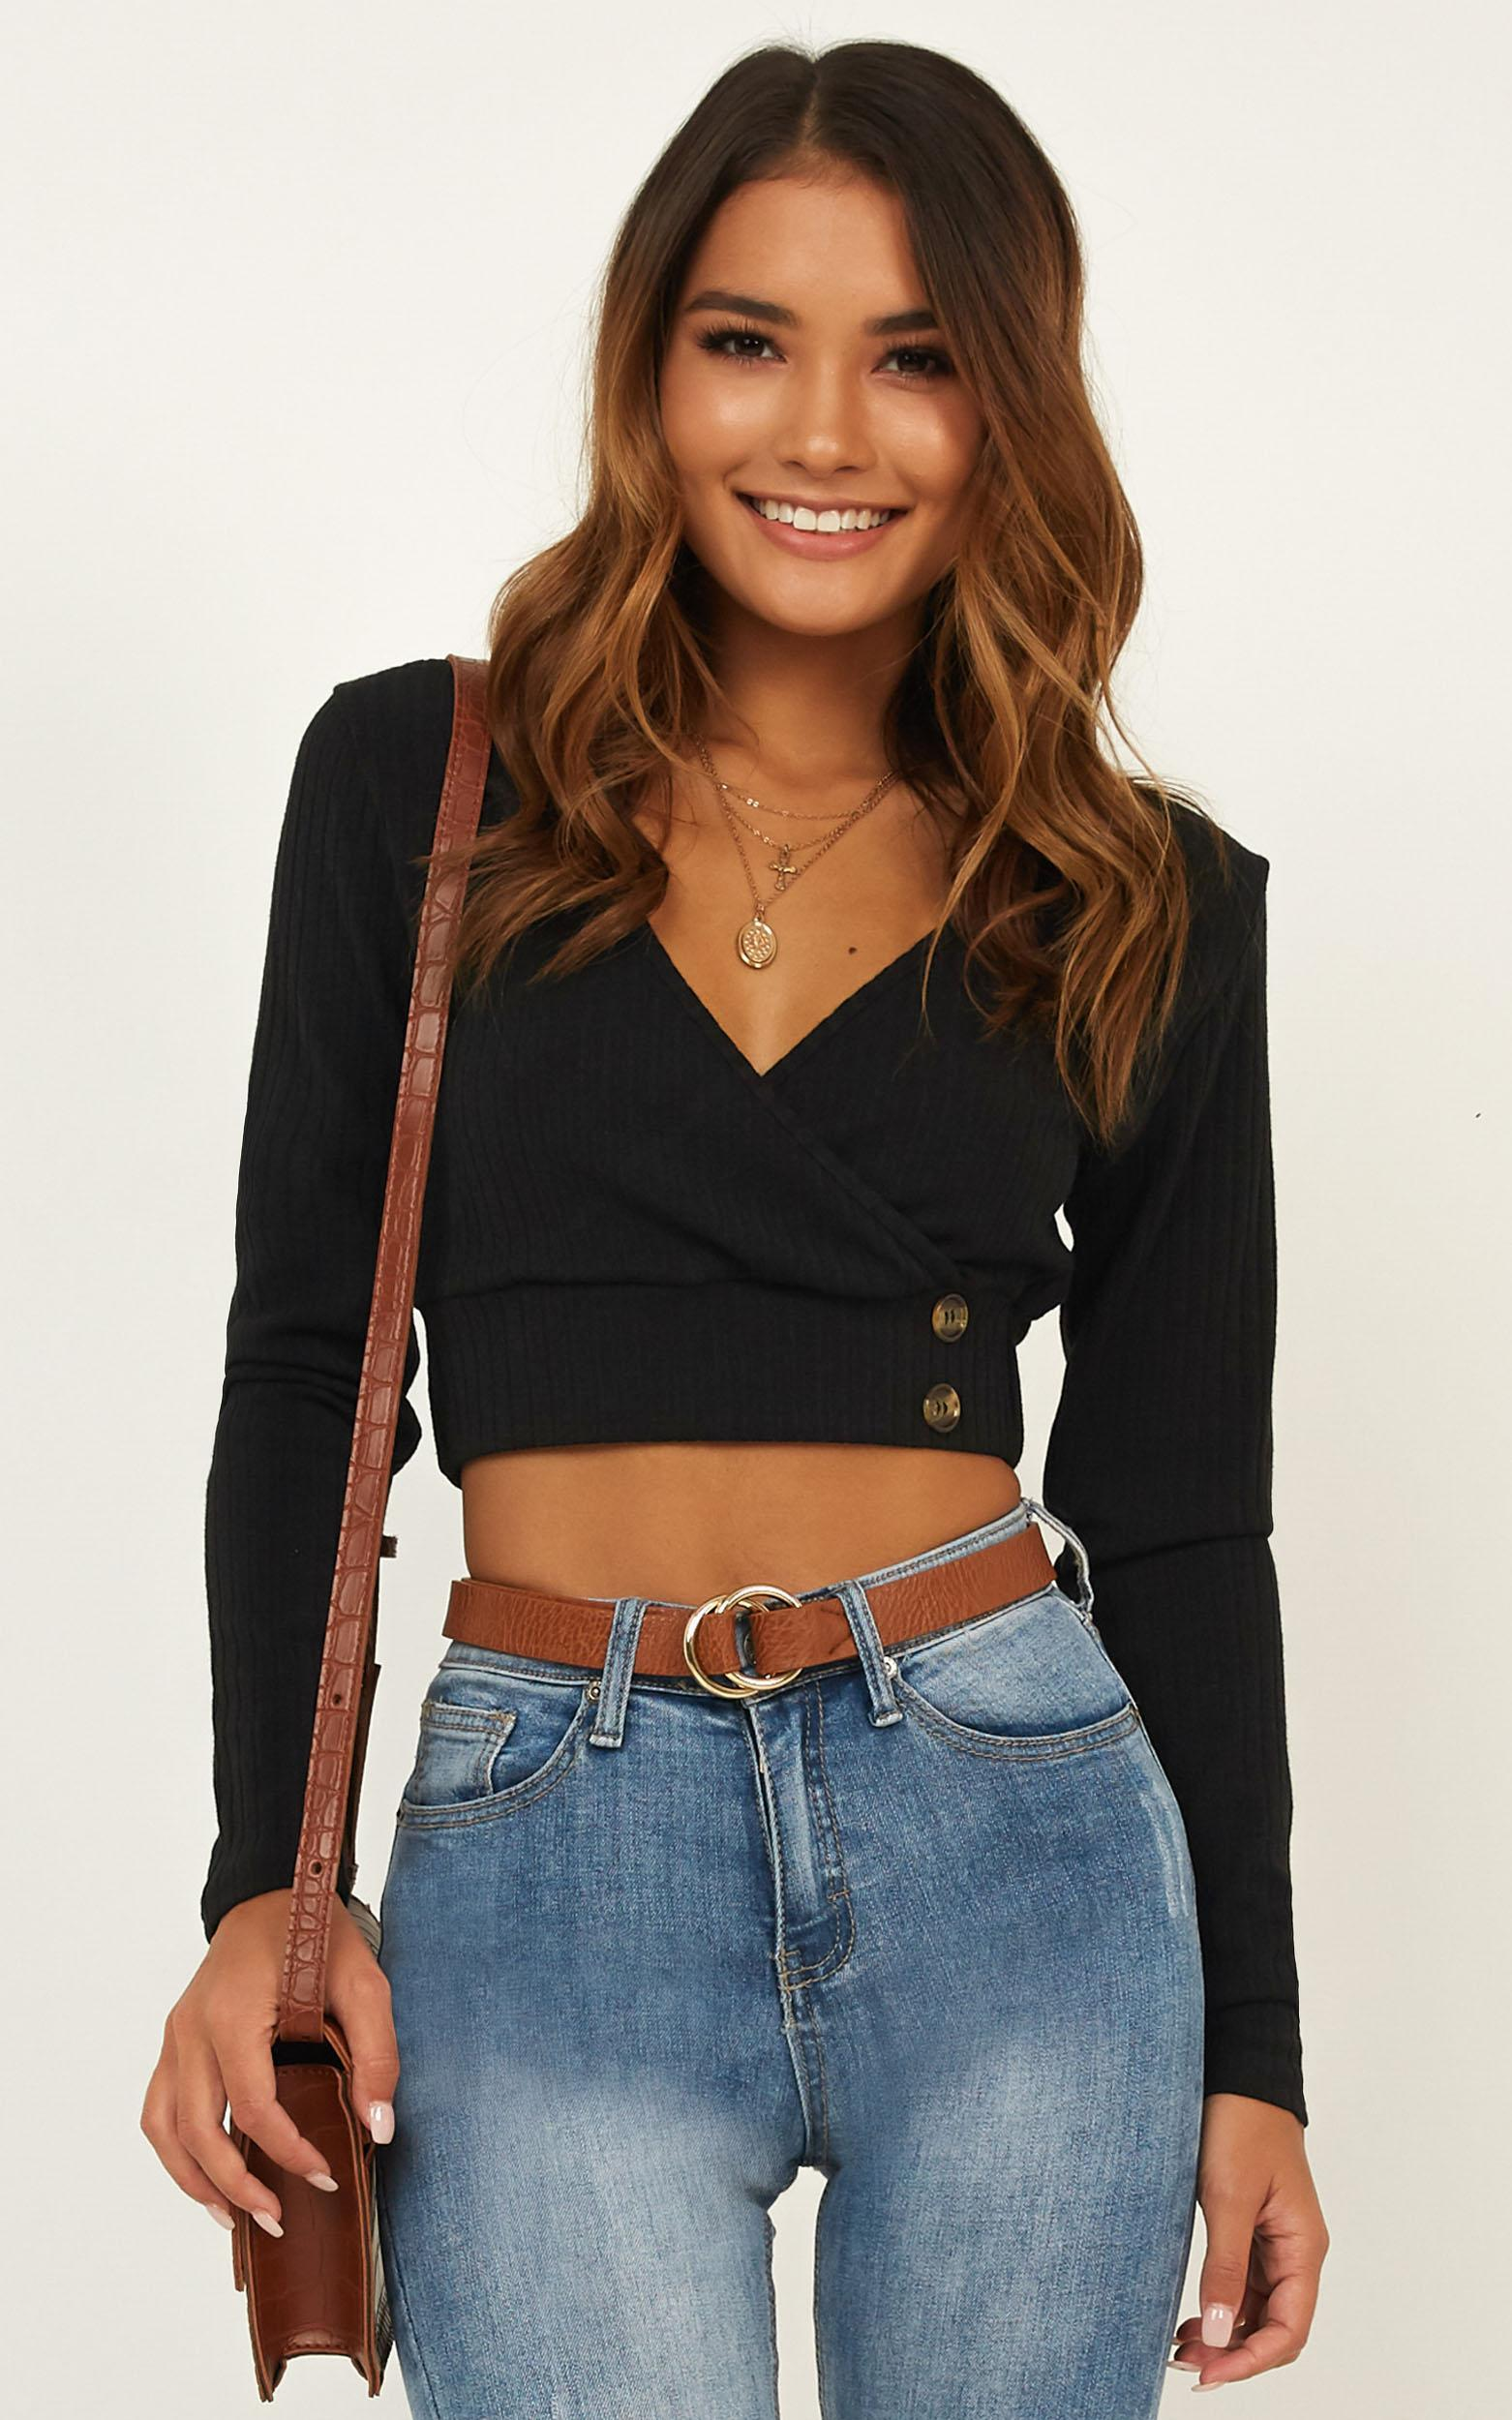 Smile On The Dial Top in black - 18 (XXXL), Black, hi-res image number null